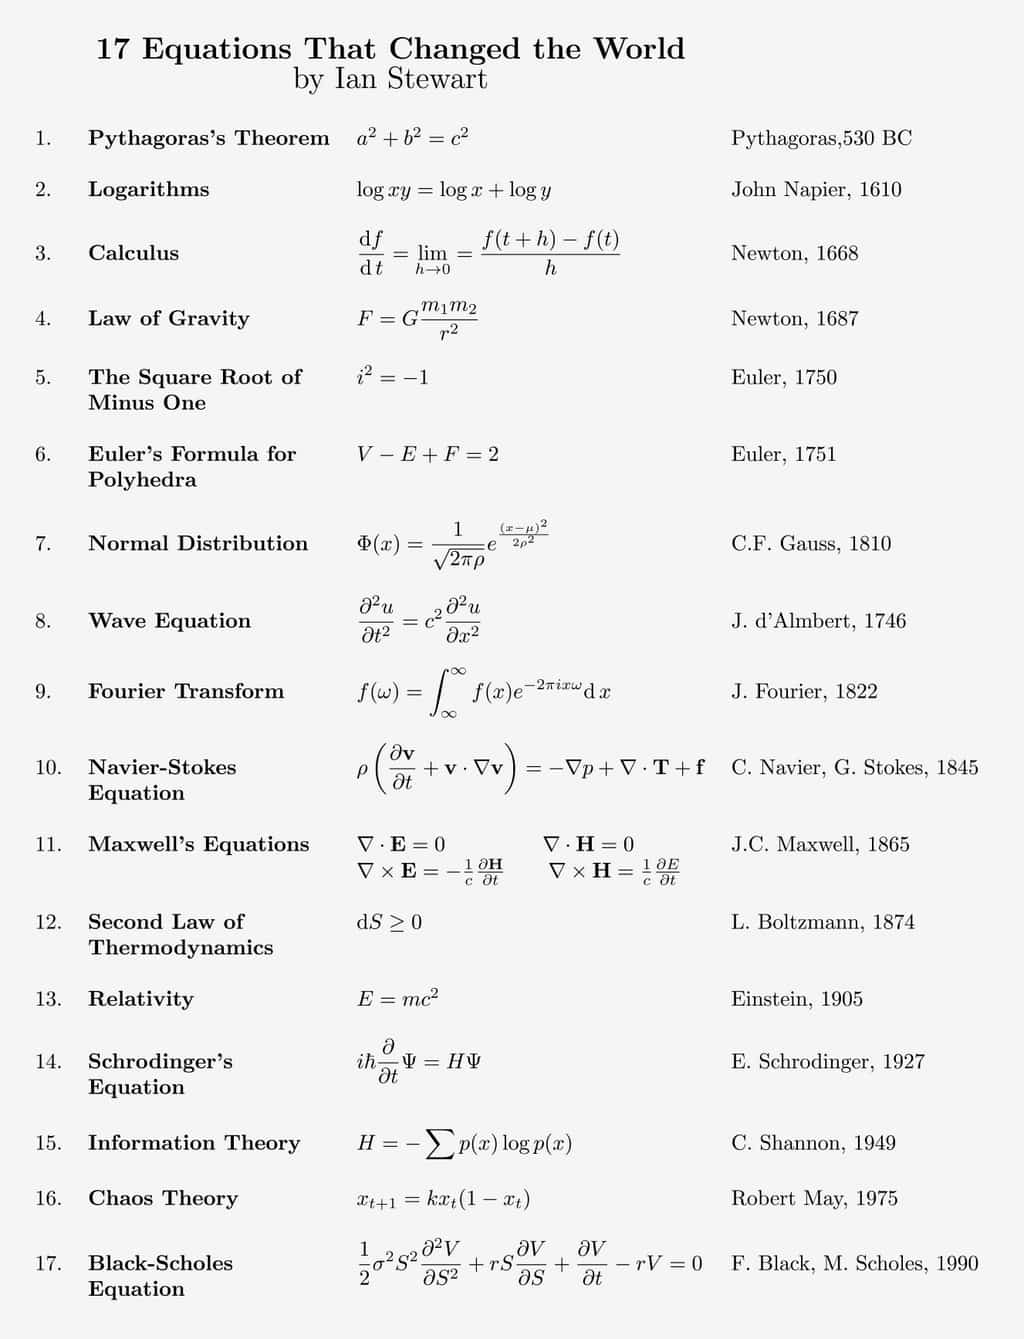 The formulas that changed the world.